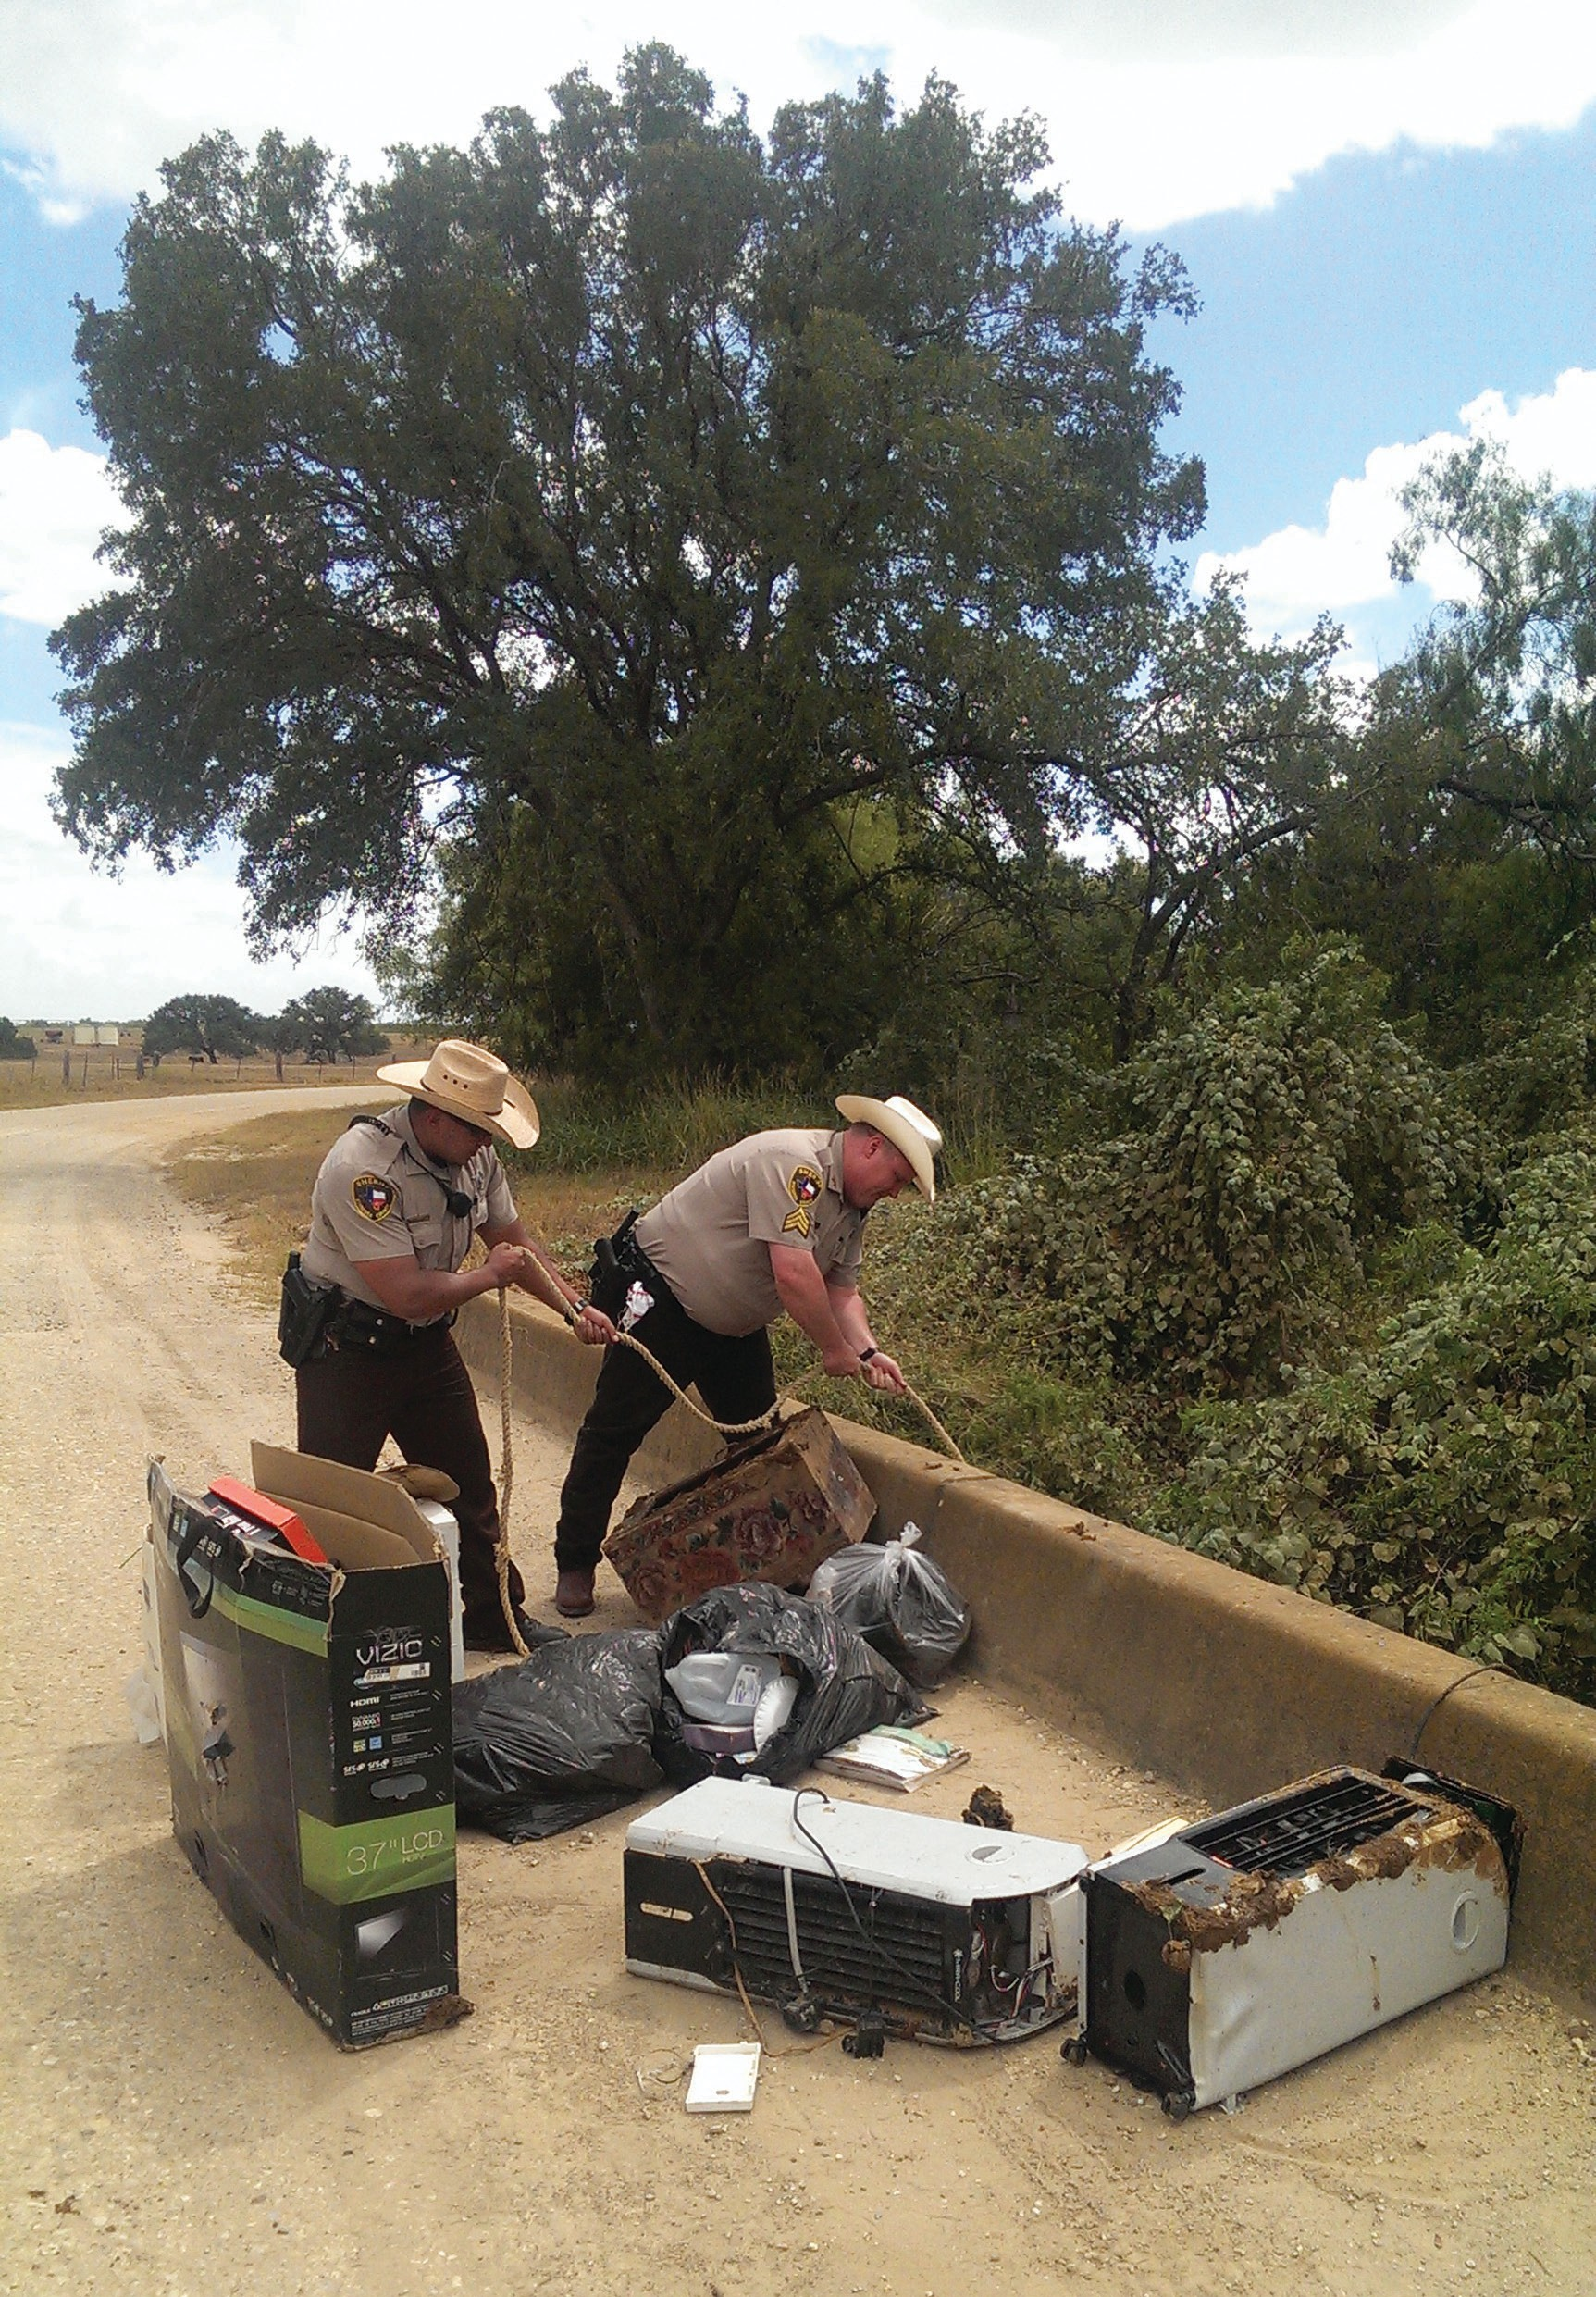 Sergeant Deputy Kevin Draughn and Deputy Michael Castaneda are seen here hoisting up items dumped off of a bridge near Jourdanton recently. The person responsible for this dumping has been identified.